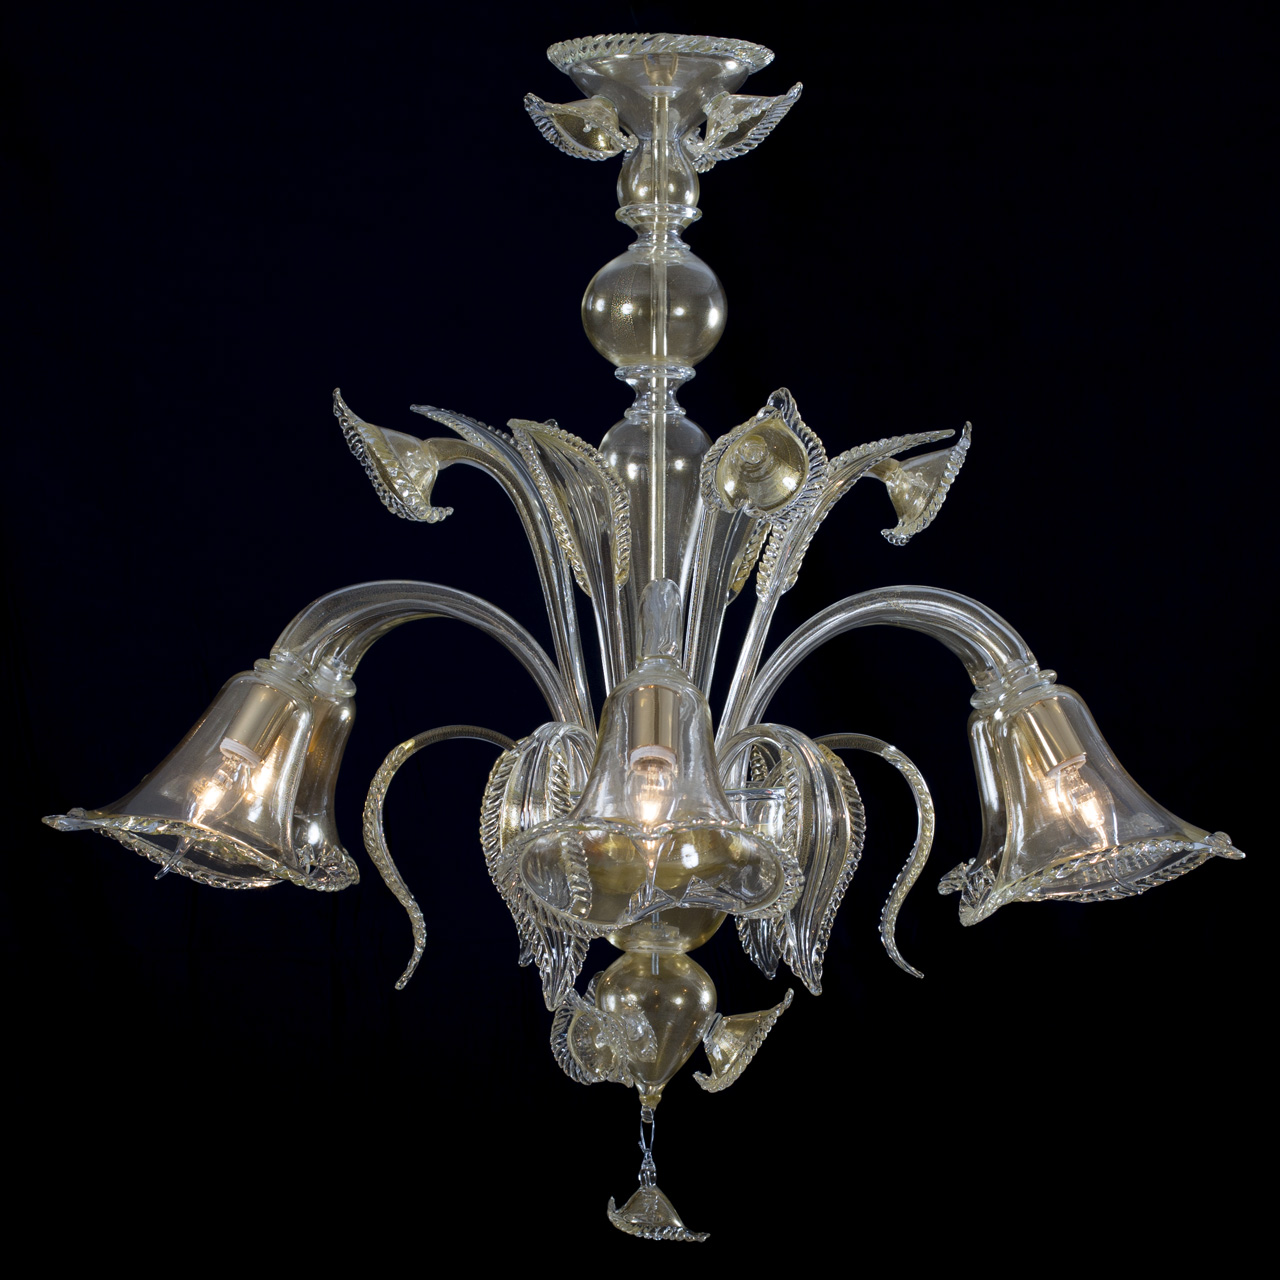 Fornace49 murano glass chandelier